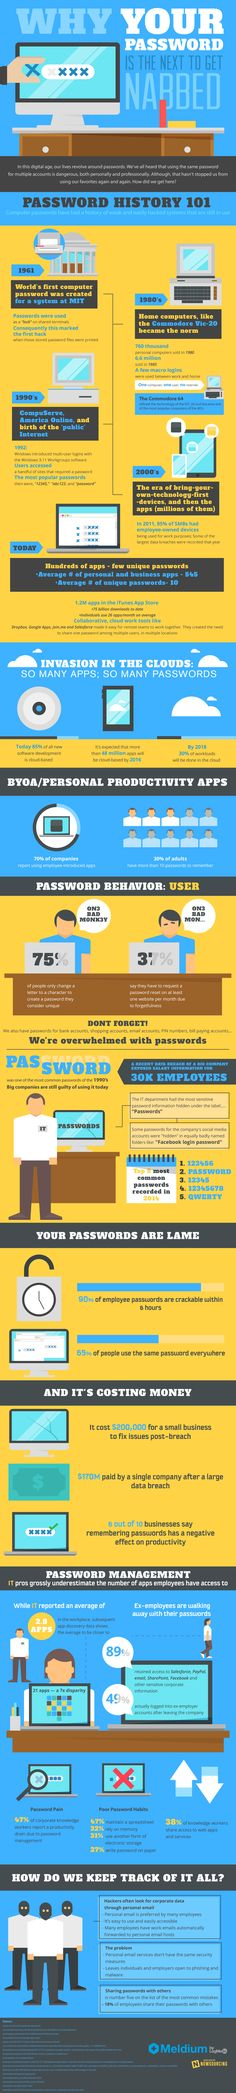 Why Your Password is Hackerbait (Infographic). Feeling hopeful about passwords? This infographic will fix that in a hurry! Best Password Manager, Password Security, Security Tips, Online Security, Security Hacking, Security Guard, Biometric Authentication, Good Passwords, Cyber Safety